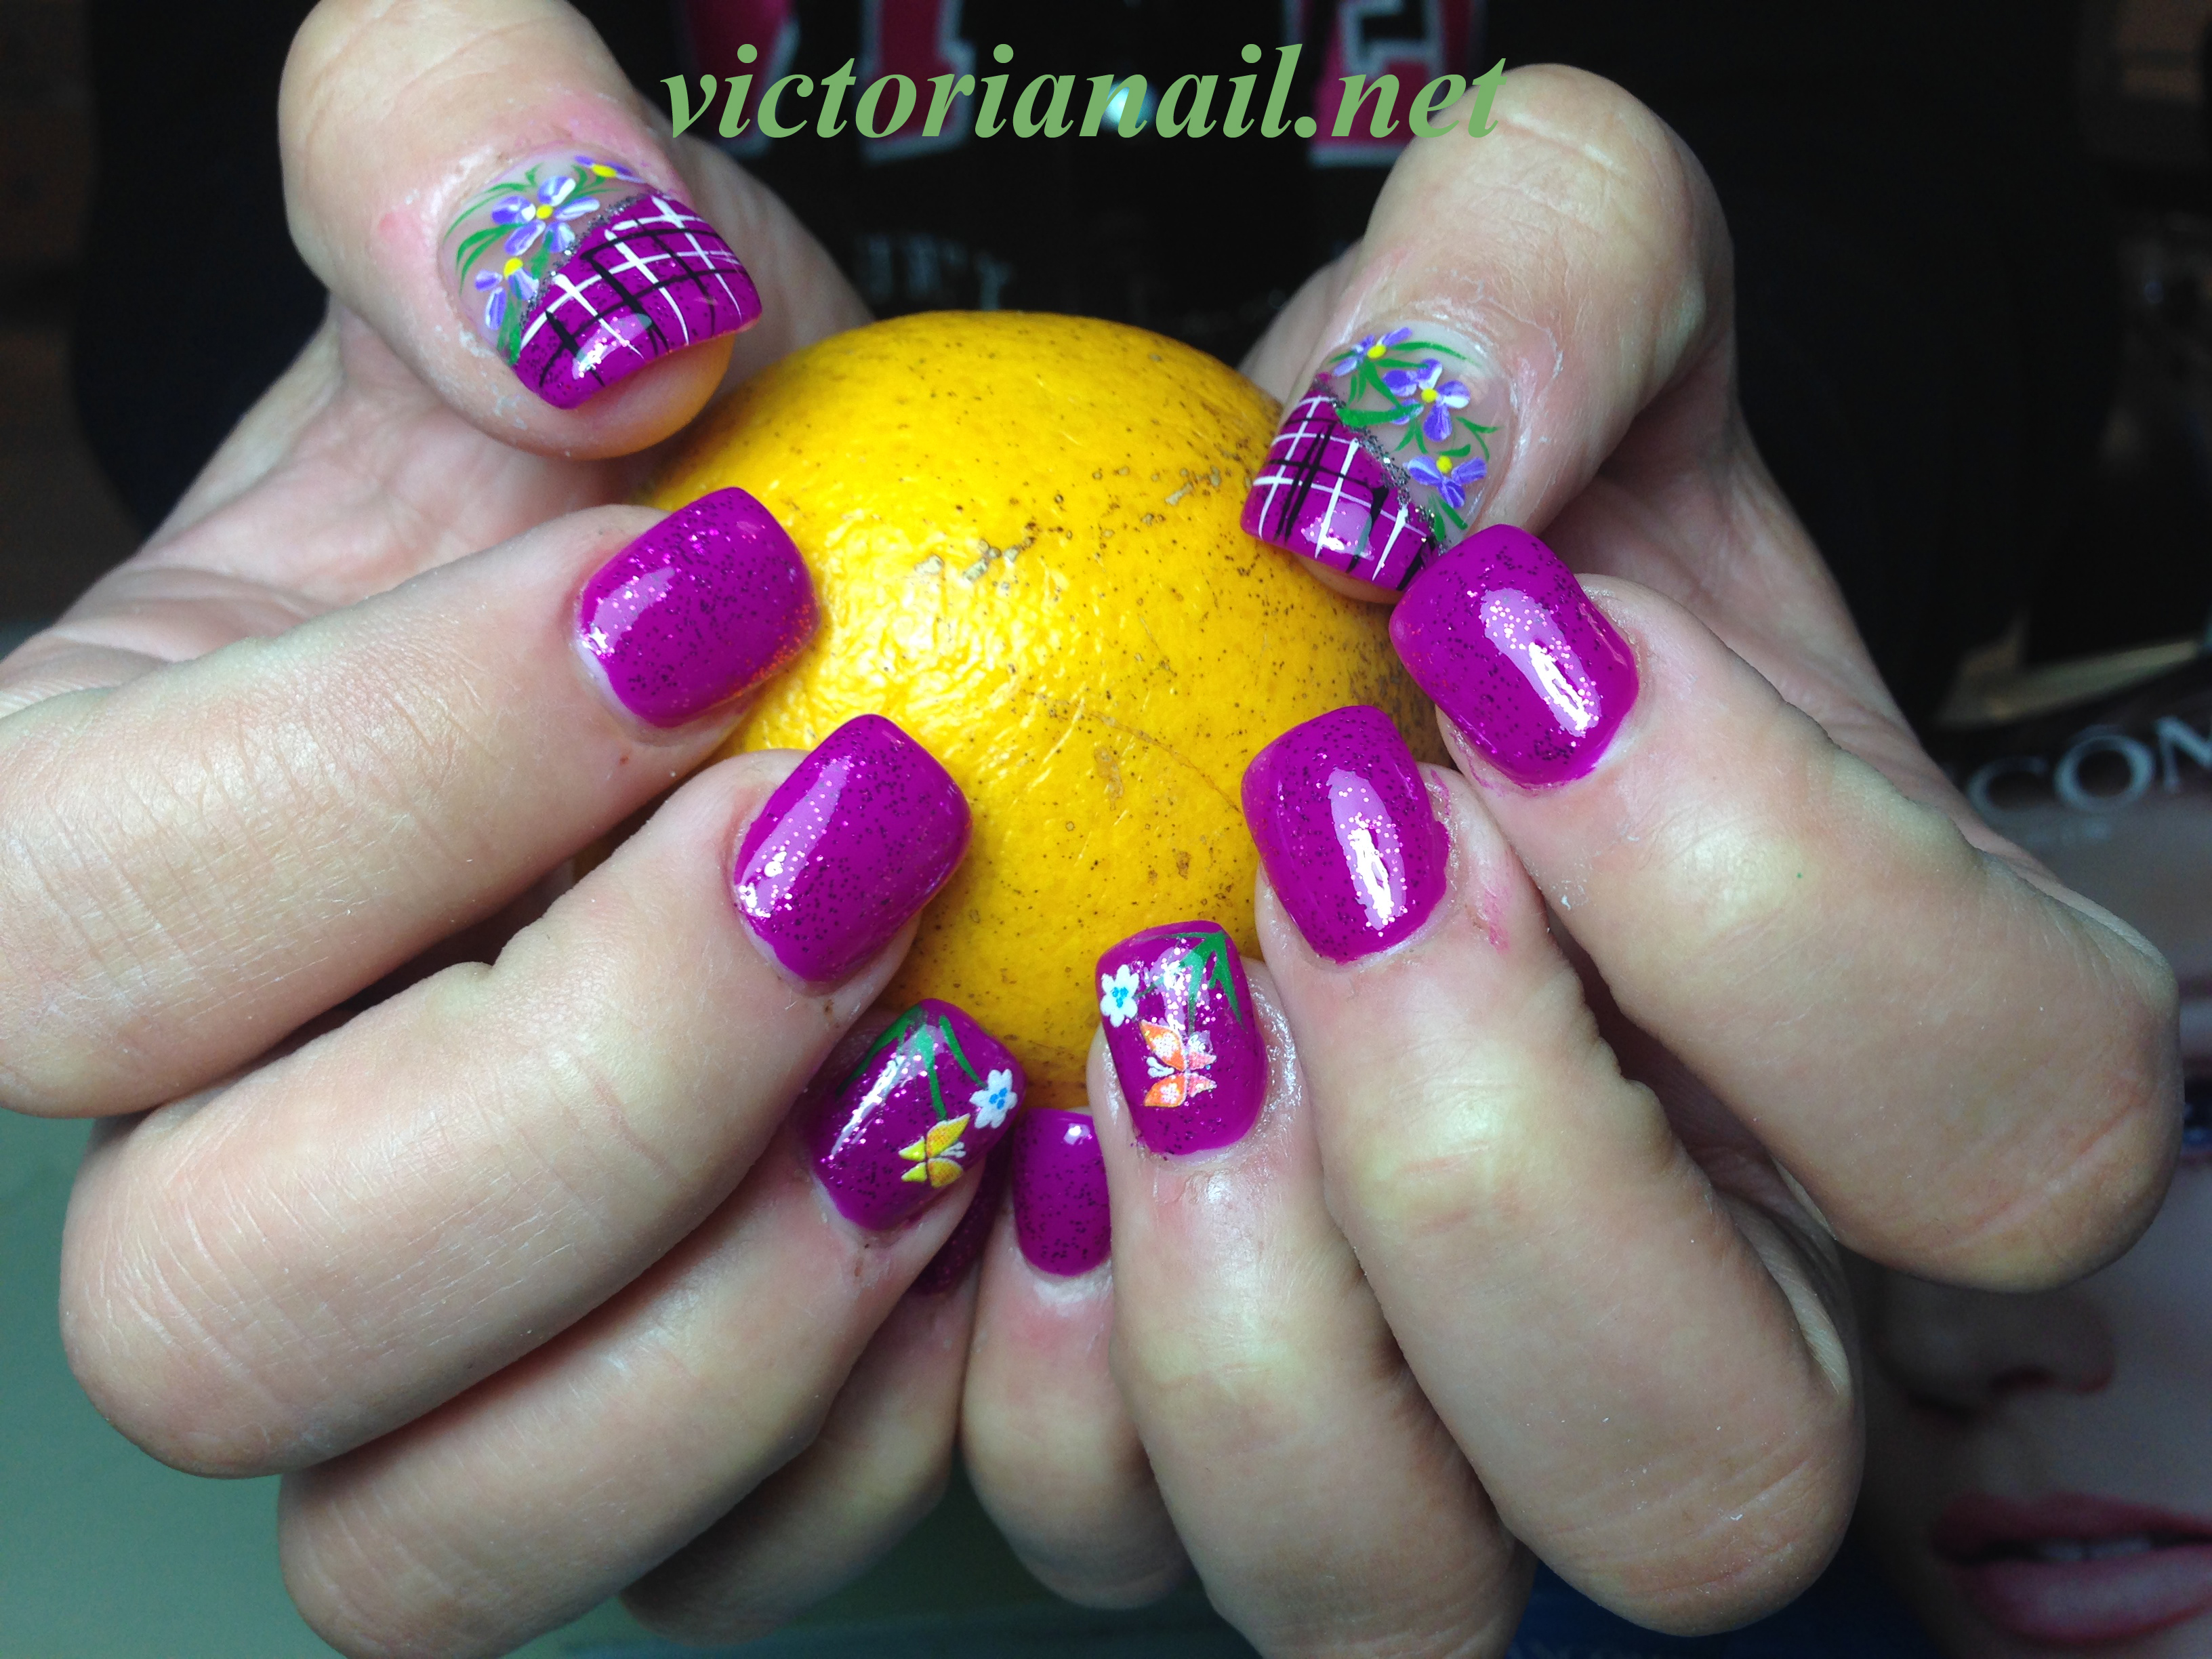 Nails Ideas For Prom 2015 On Victoria Nails Special Occasion Nails Victorianail Net